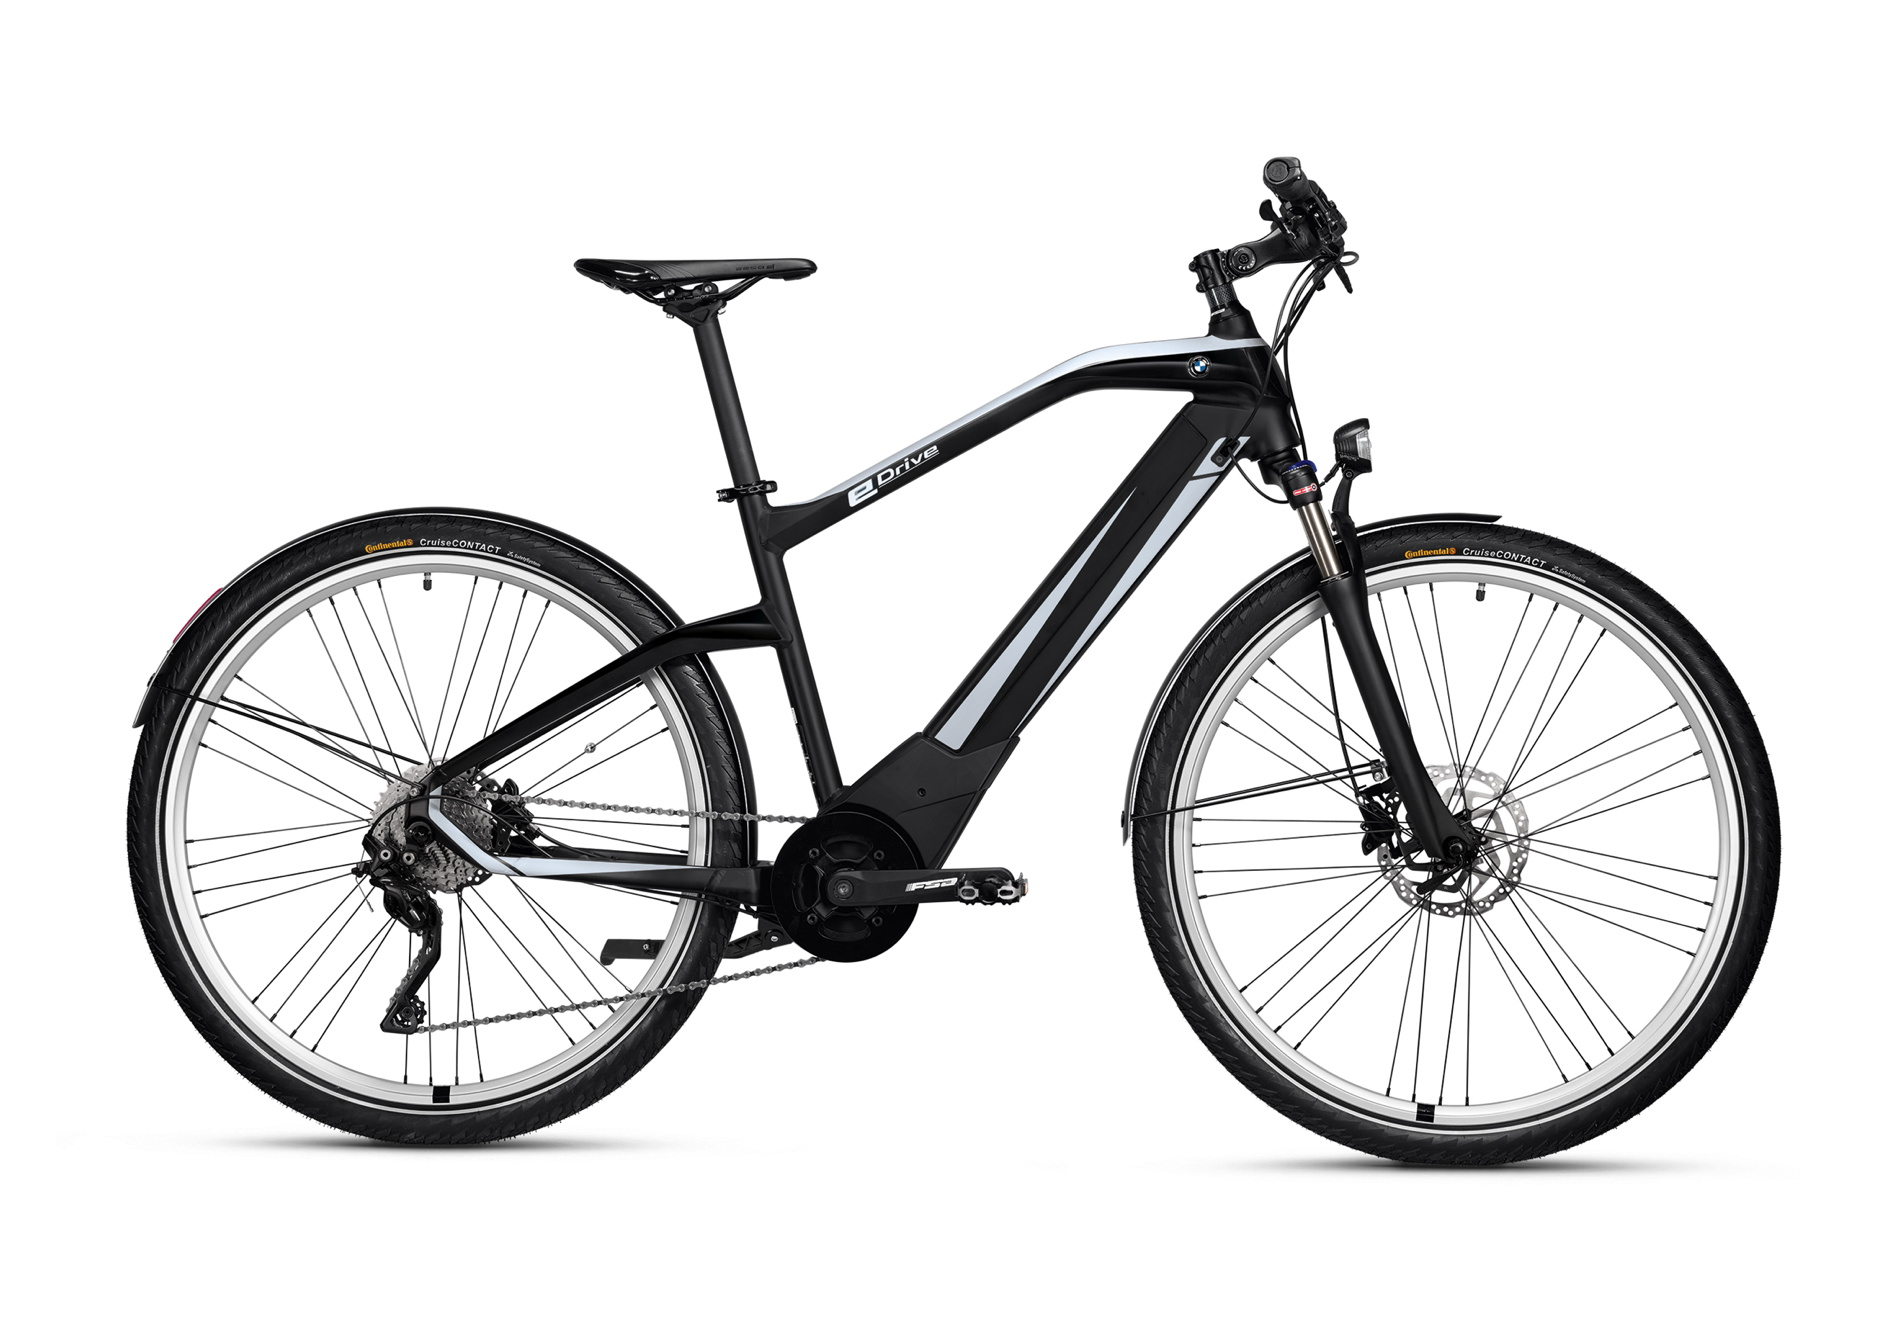 8. BMW Active Hybrid, E-Bike, 700C